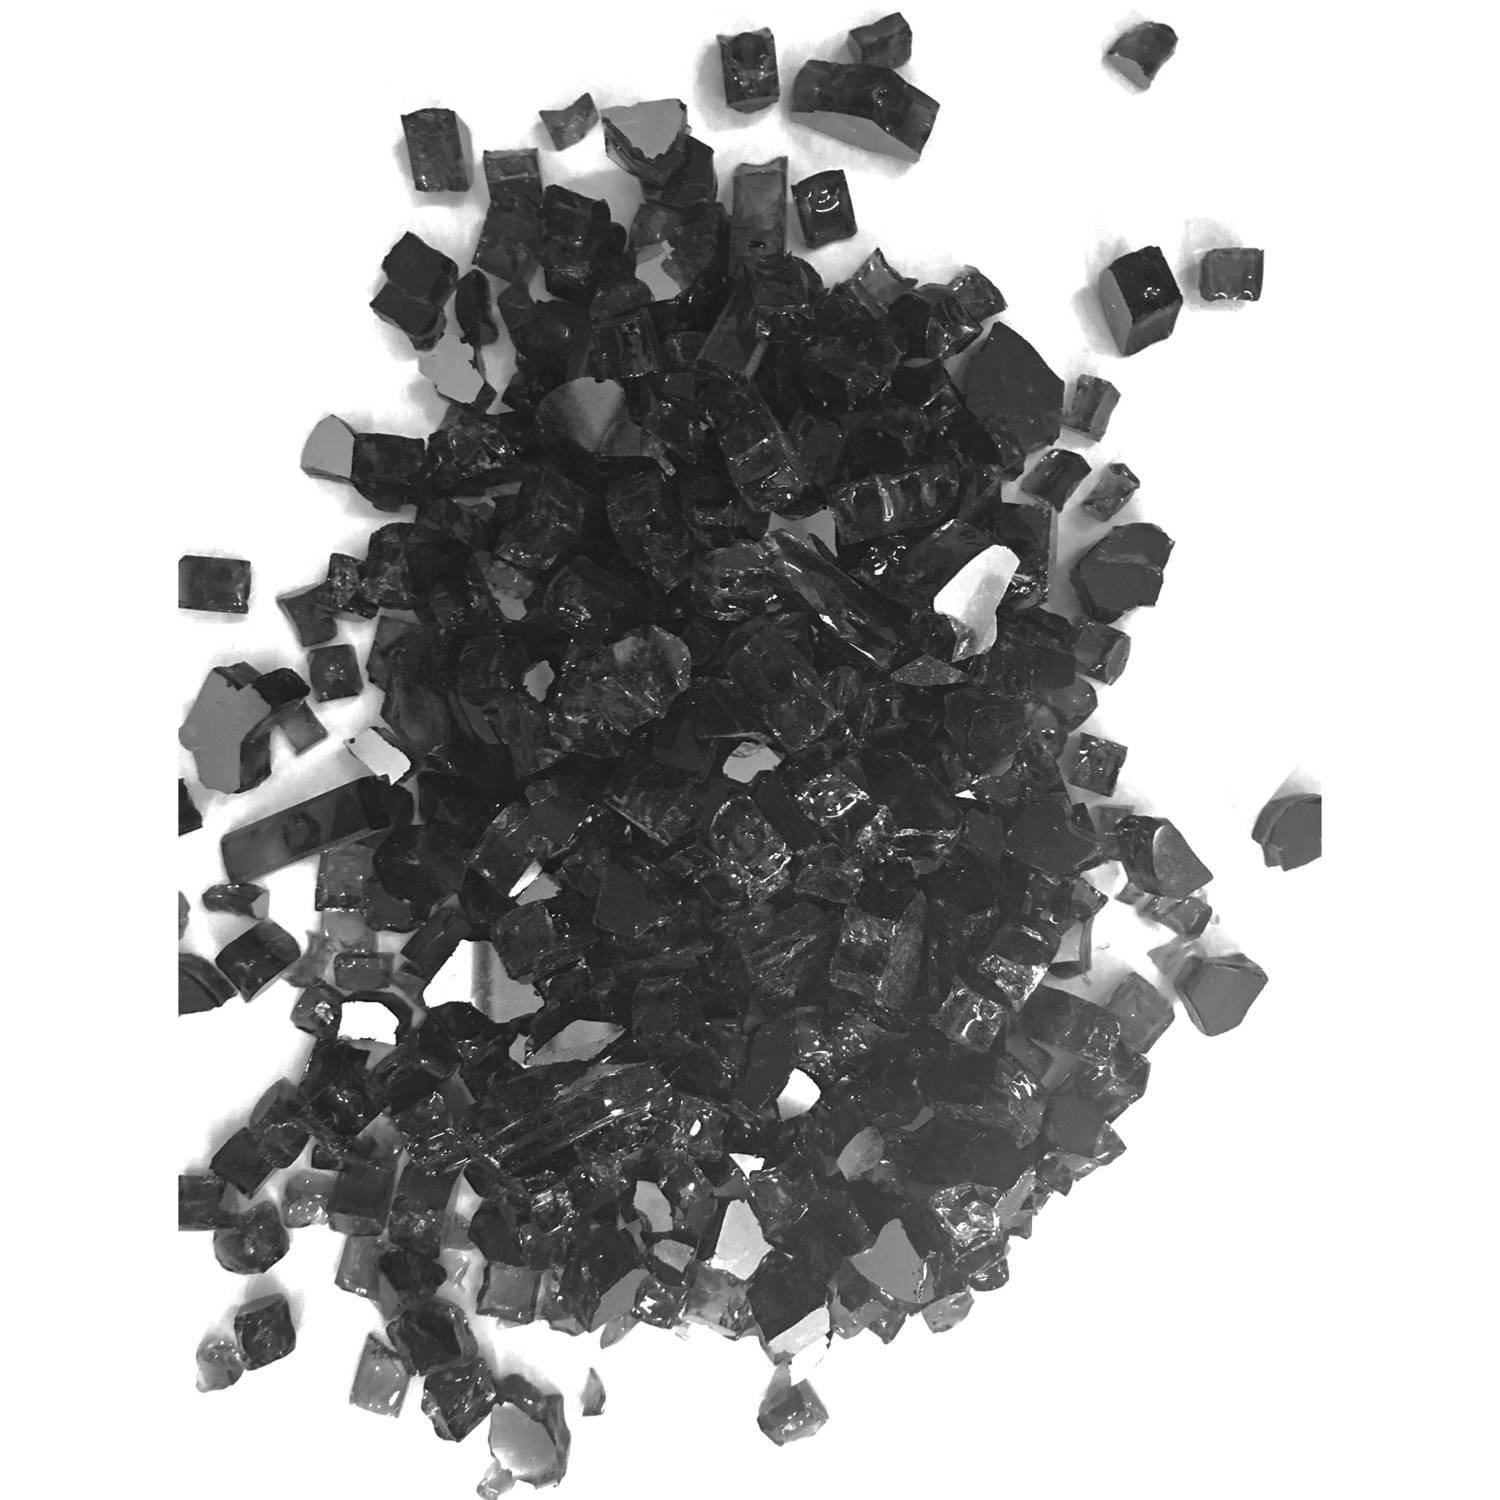 "Element Black Reflective 1/4"" Fire Glass, 10 lbs"